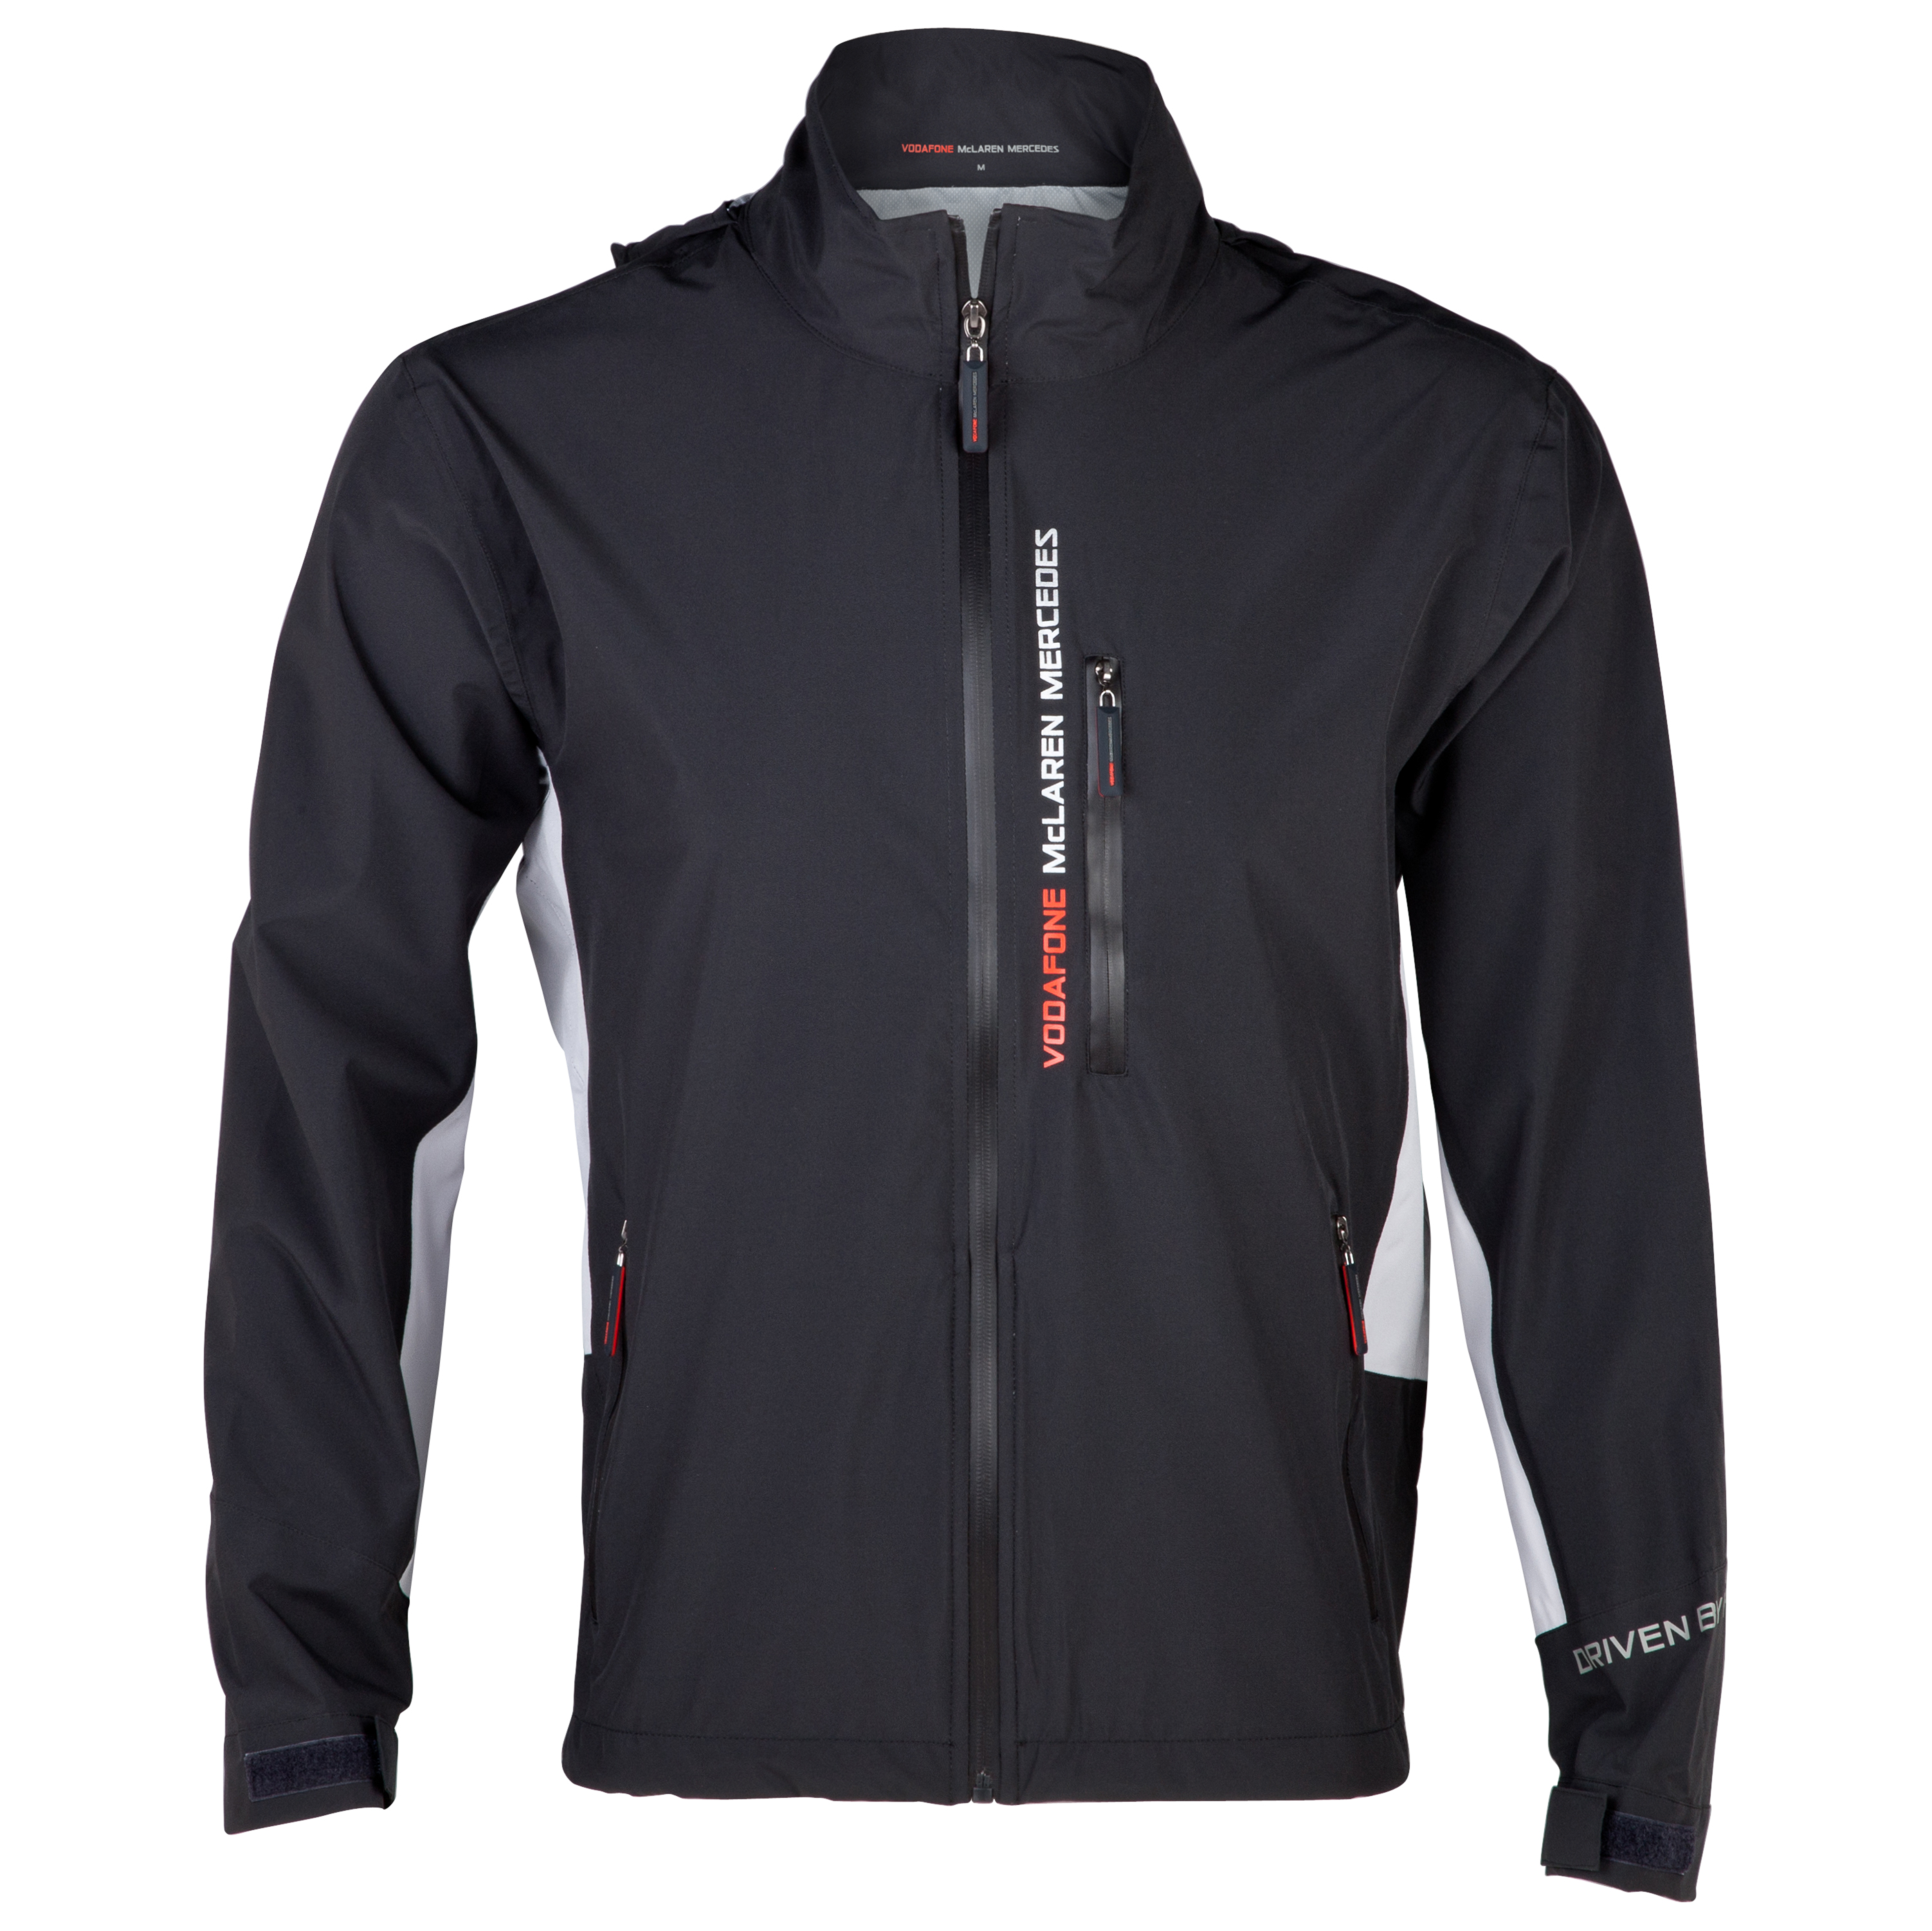 Vodafone McLaren Mercedes Essentials Collection Lightweight Waterproof Jacket